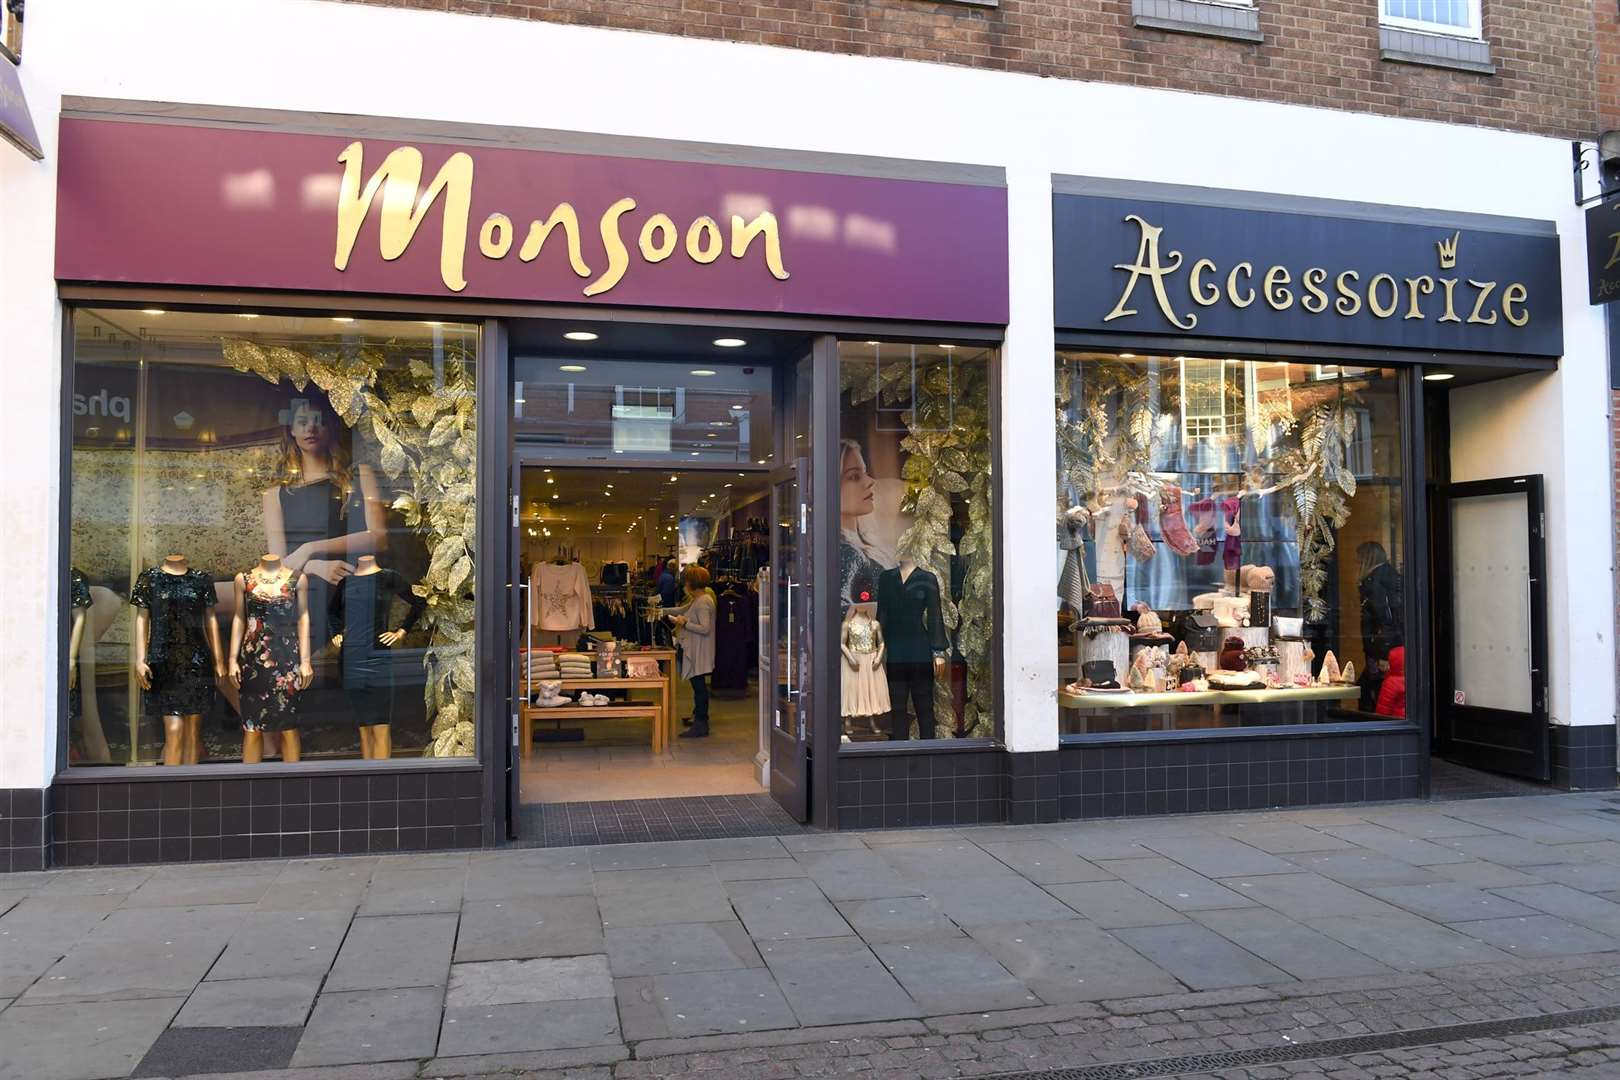 Monsoon Accessorize, the business behind popular High Streetfashion retailers Monsoon and Accessorize have announced they are closing 35 stores across the UK with 2 in The Three Counties